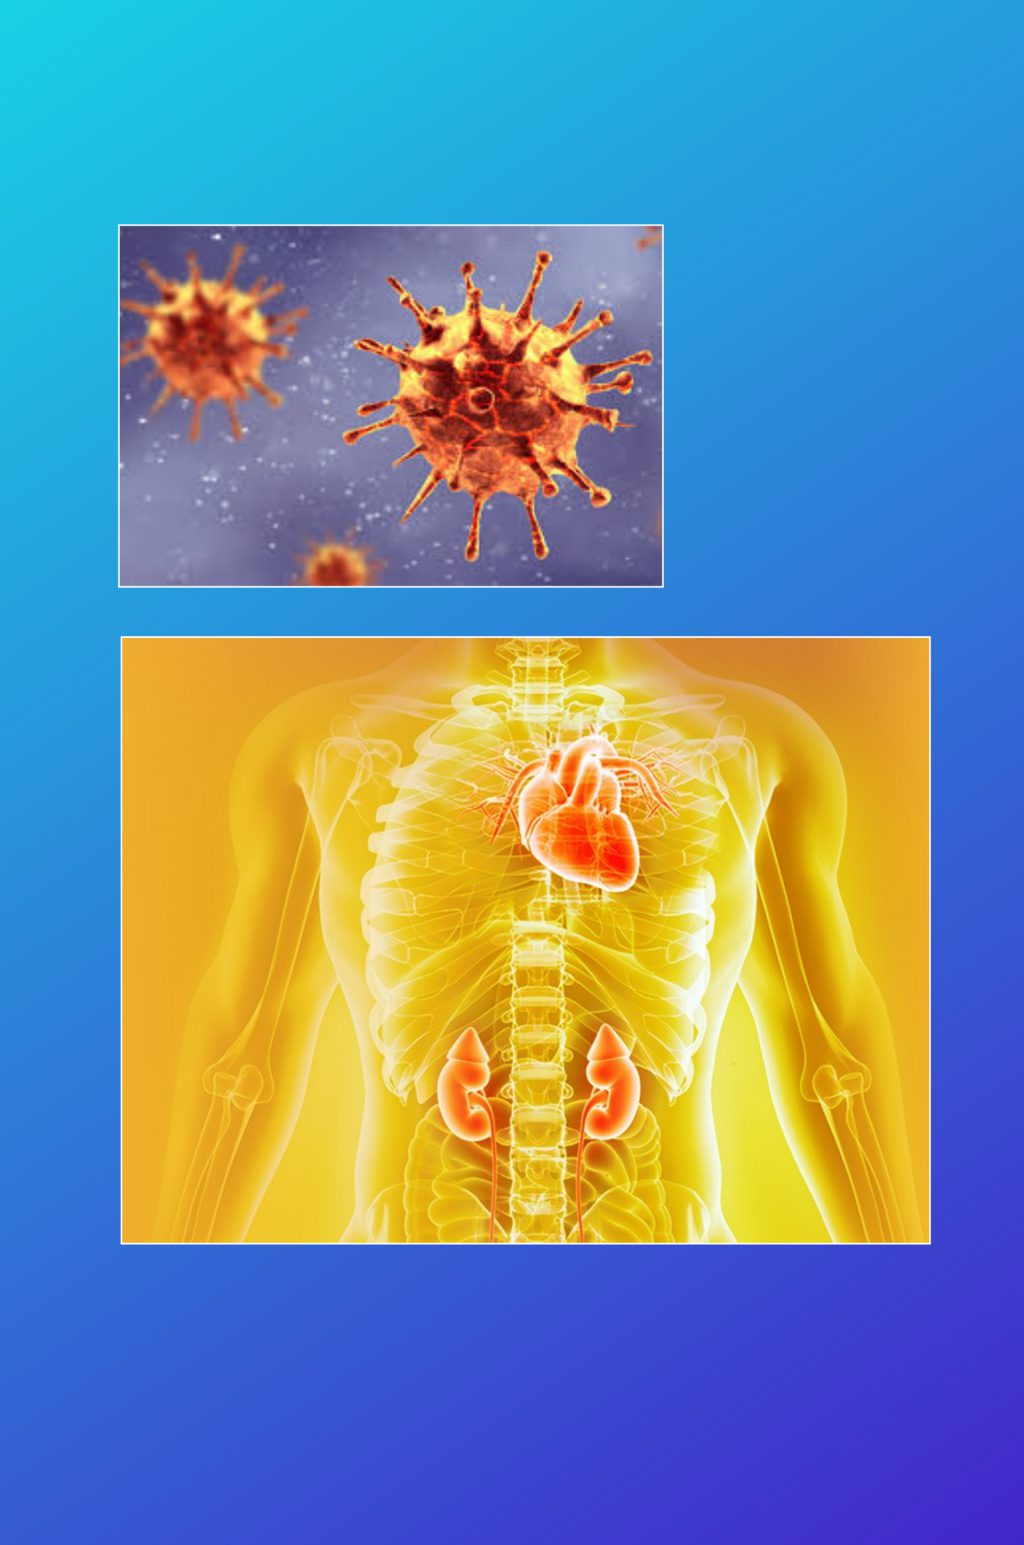 COVID-19 – Why Its Prognosis Is Poor In Patient With Cardiac Issues, Diabetes, HIV, Renal, and Lung Disorders